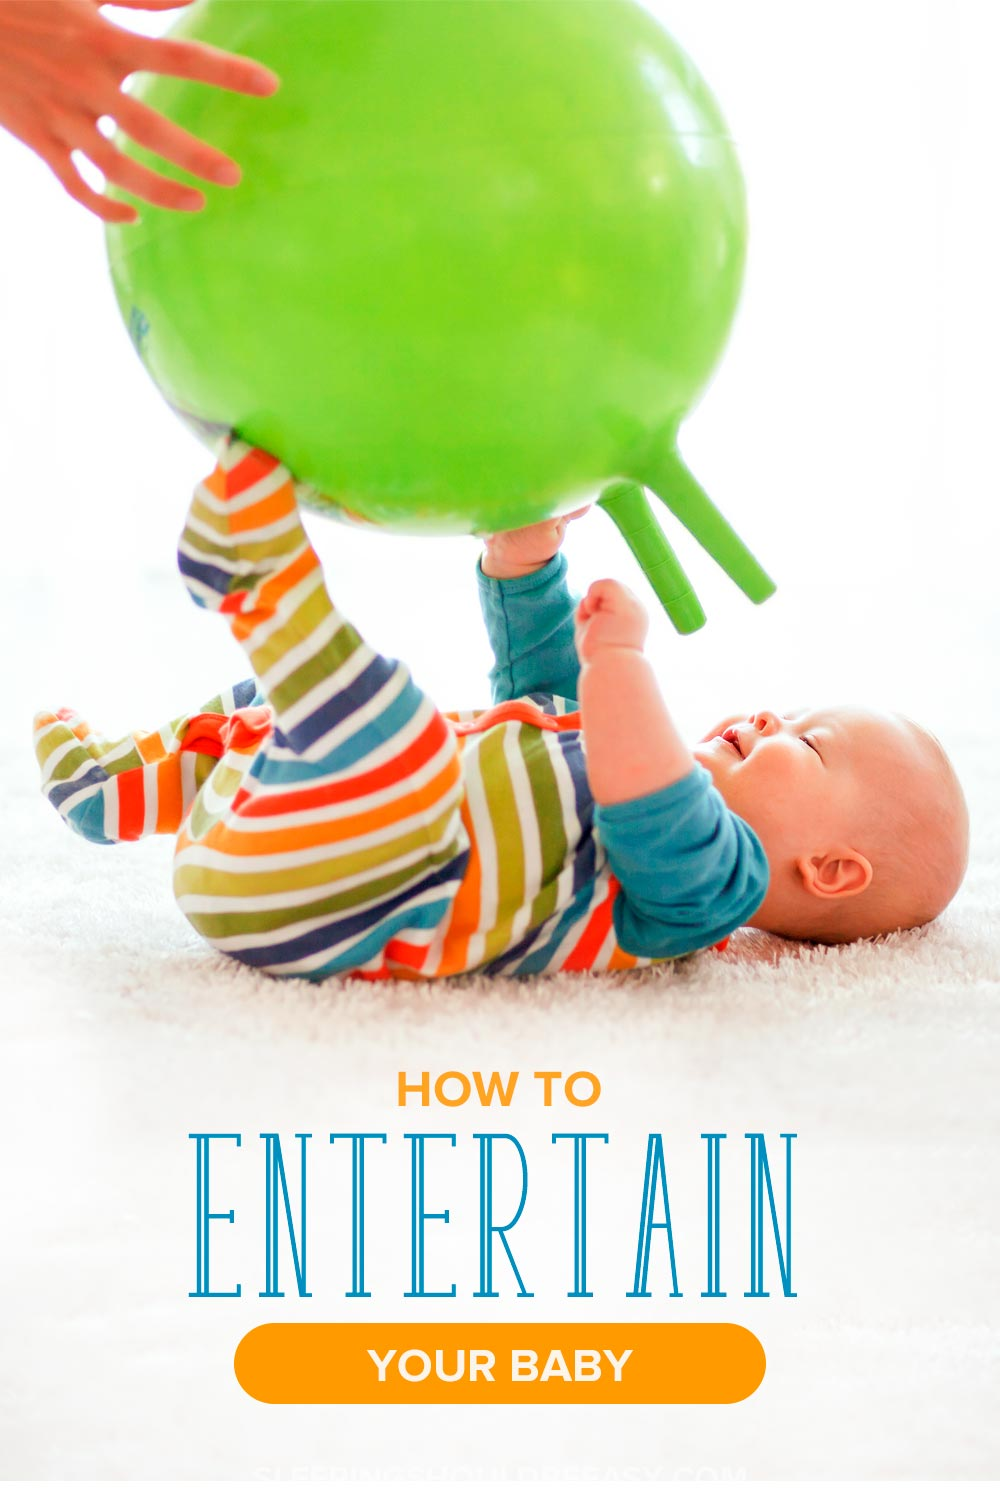 Looking for fun ways to play with your baby, whether at home all day or out and about? Learn how to entertain a baby with these simple ways.